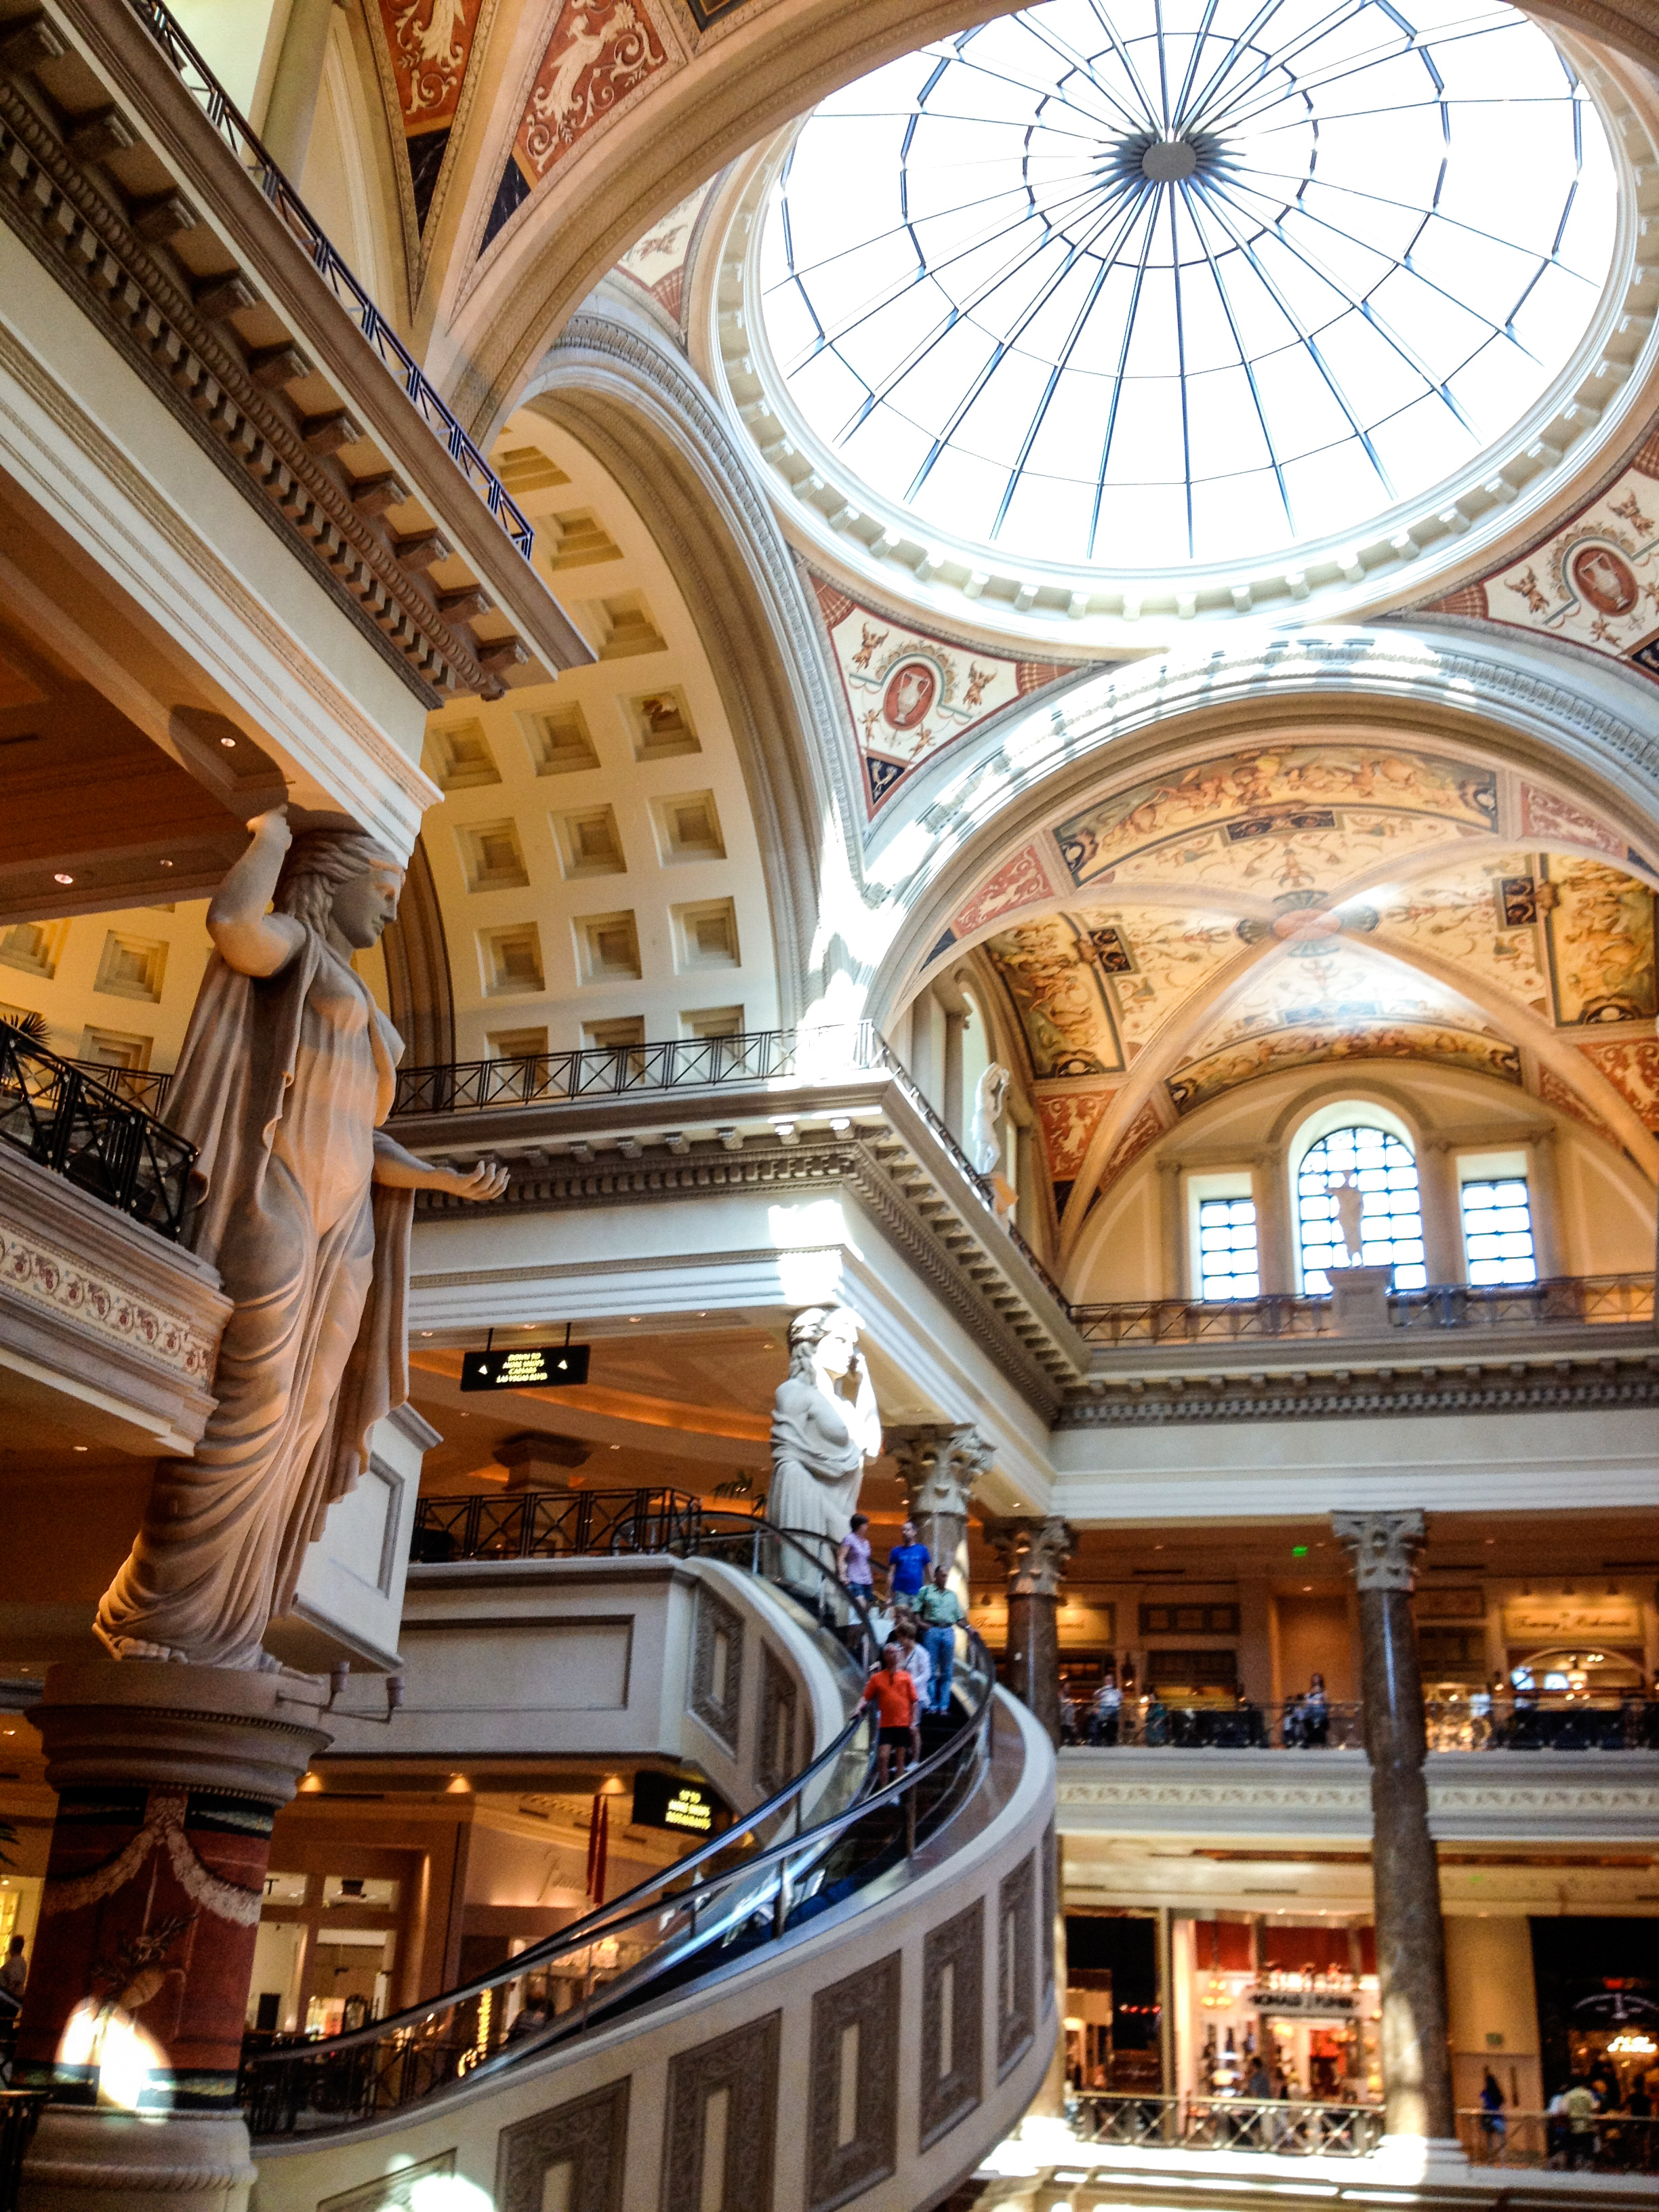 The Forum Shops at Caesars in Las Vegas | EpicureanTravelerBlog.com